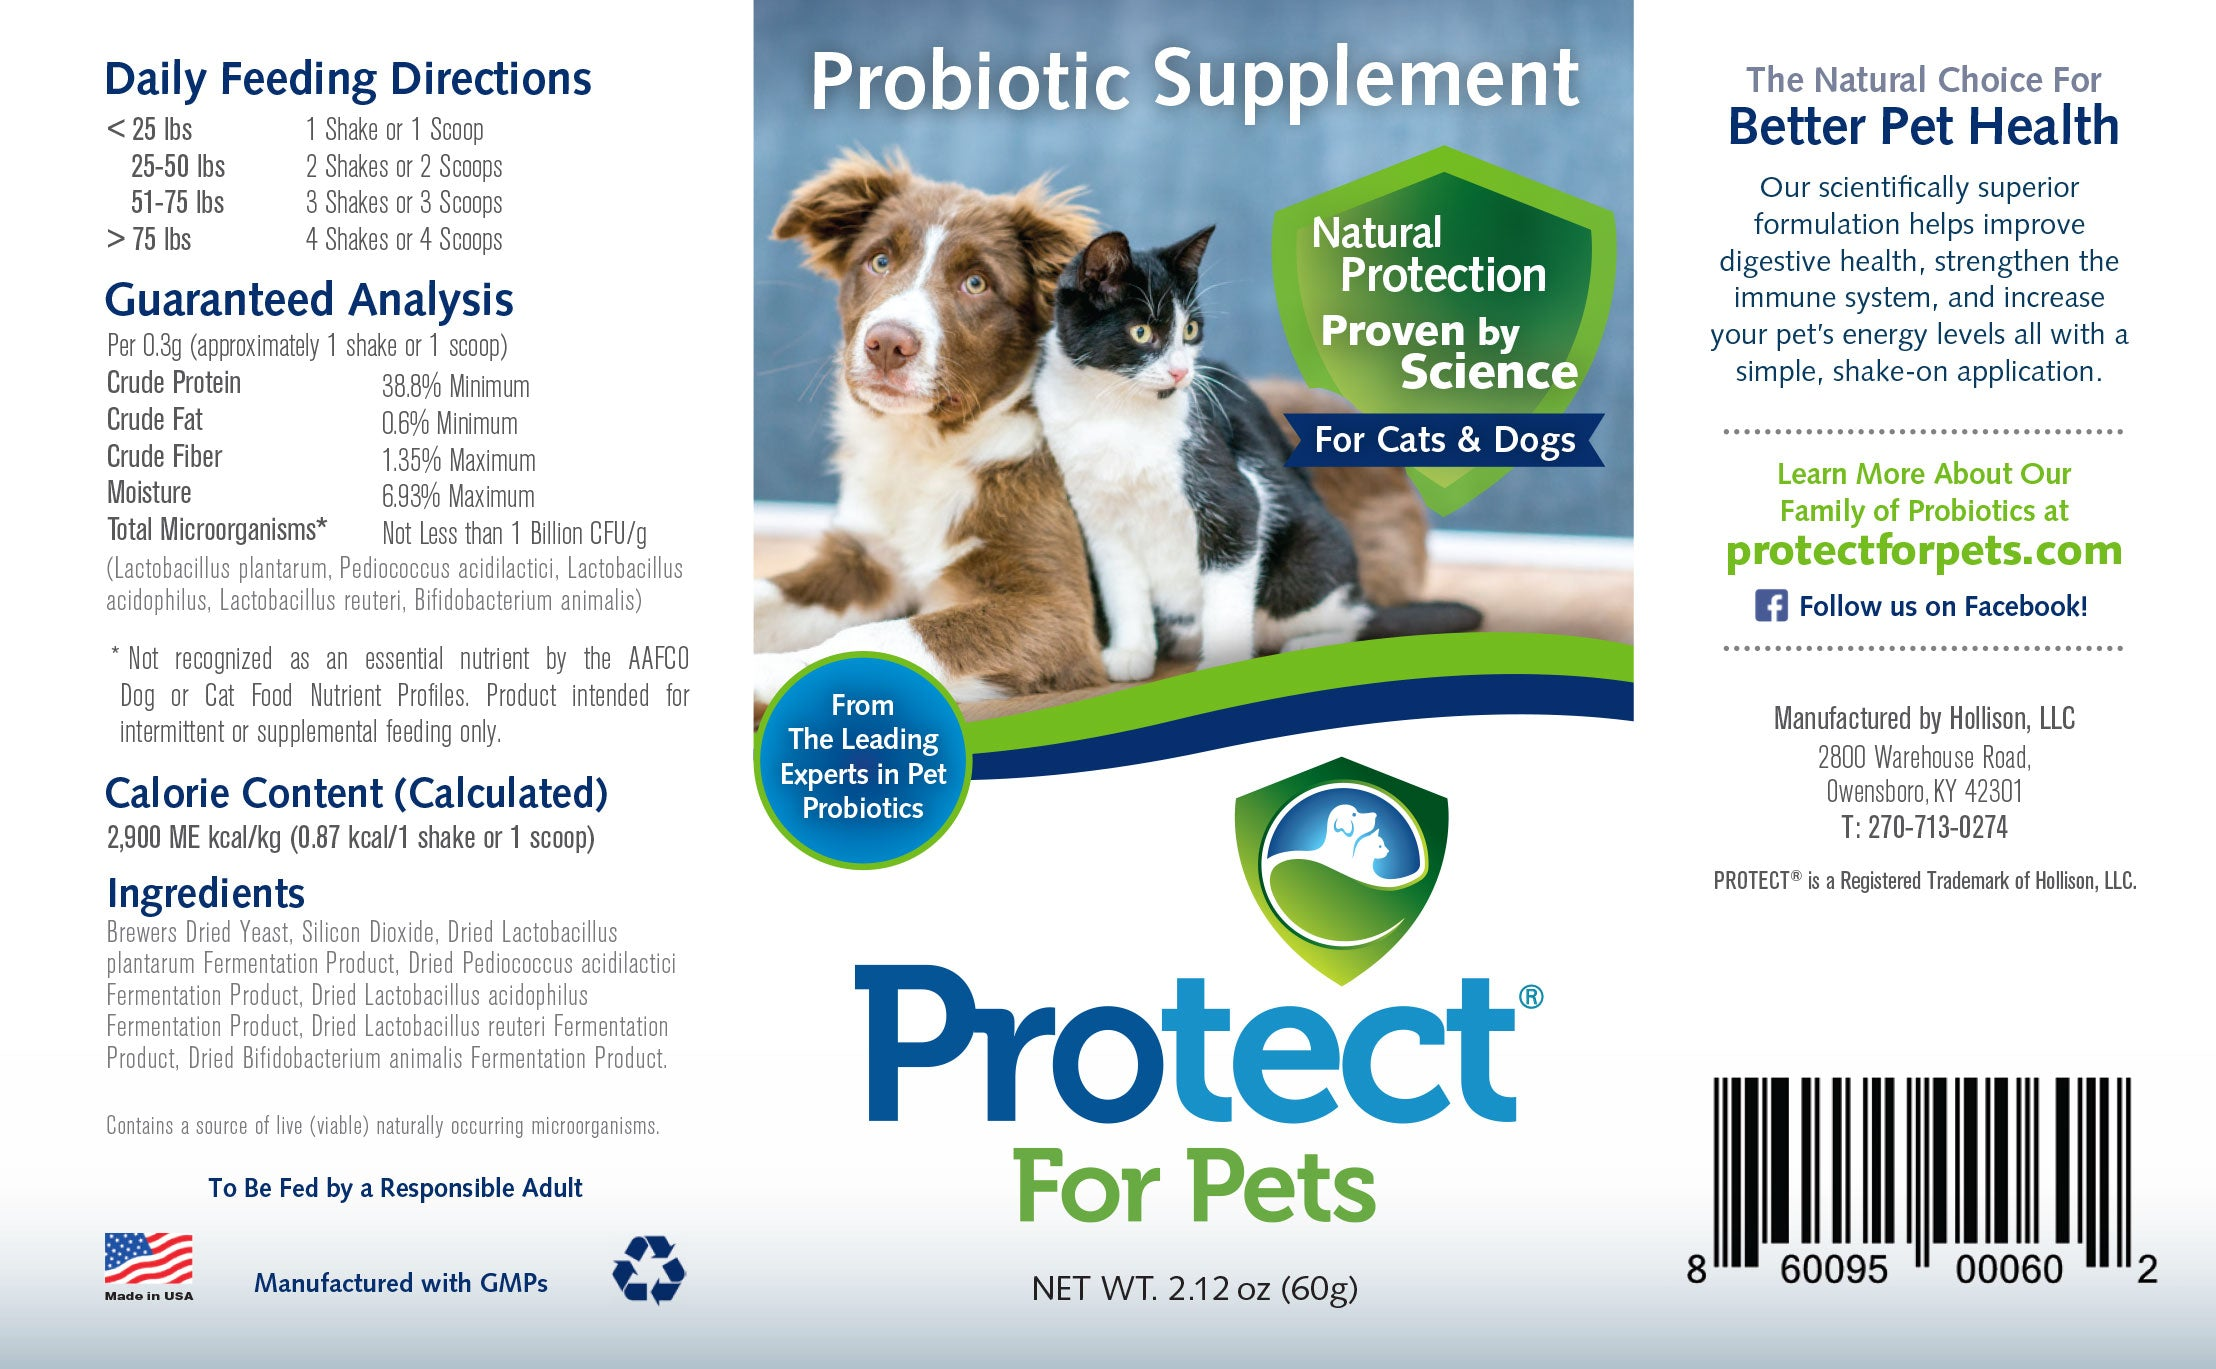 Protect for Pets Nutrition Guide